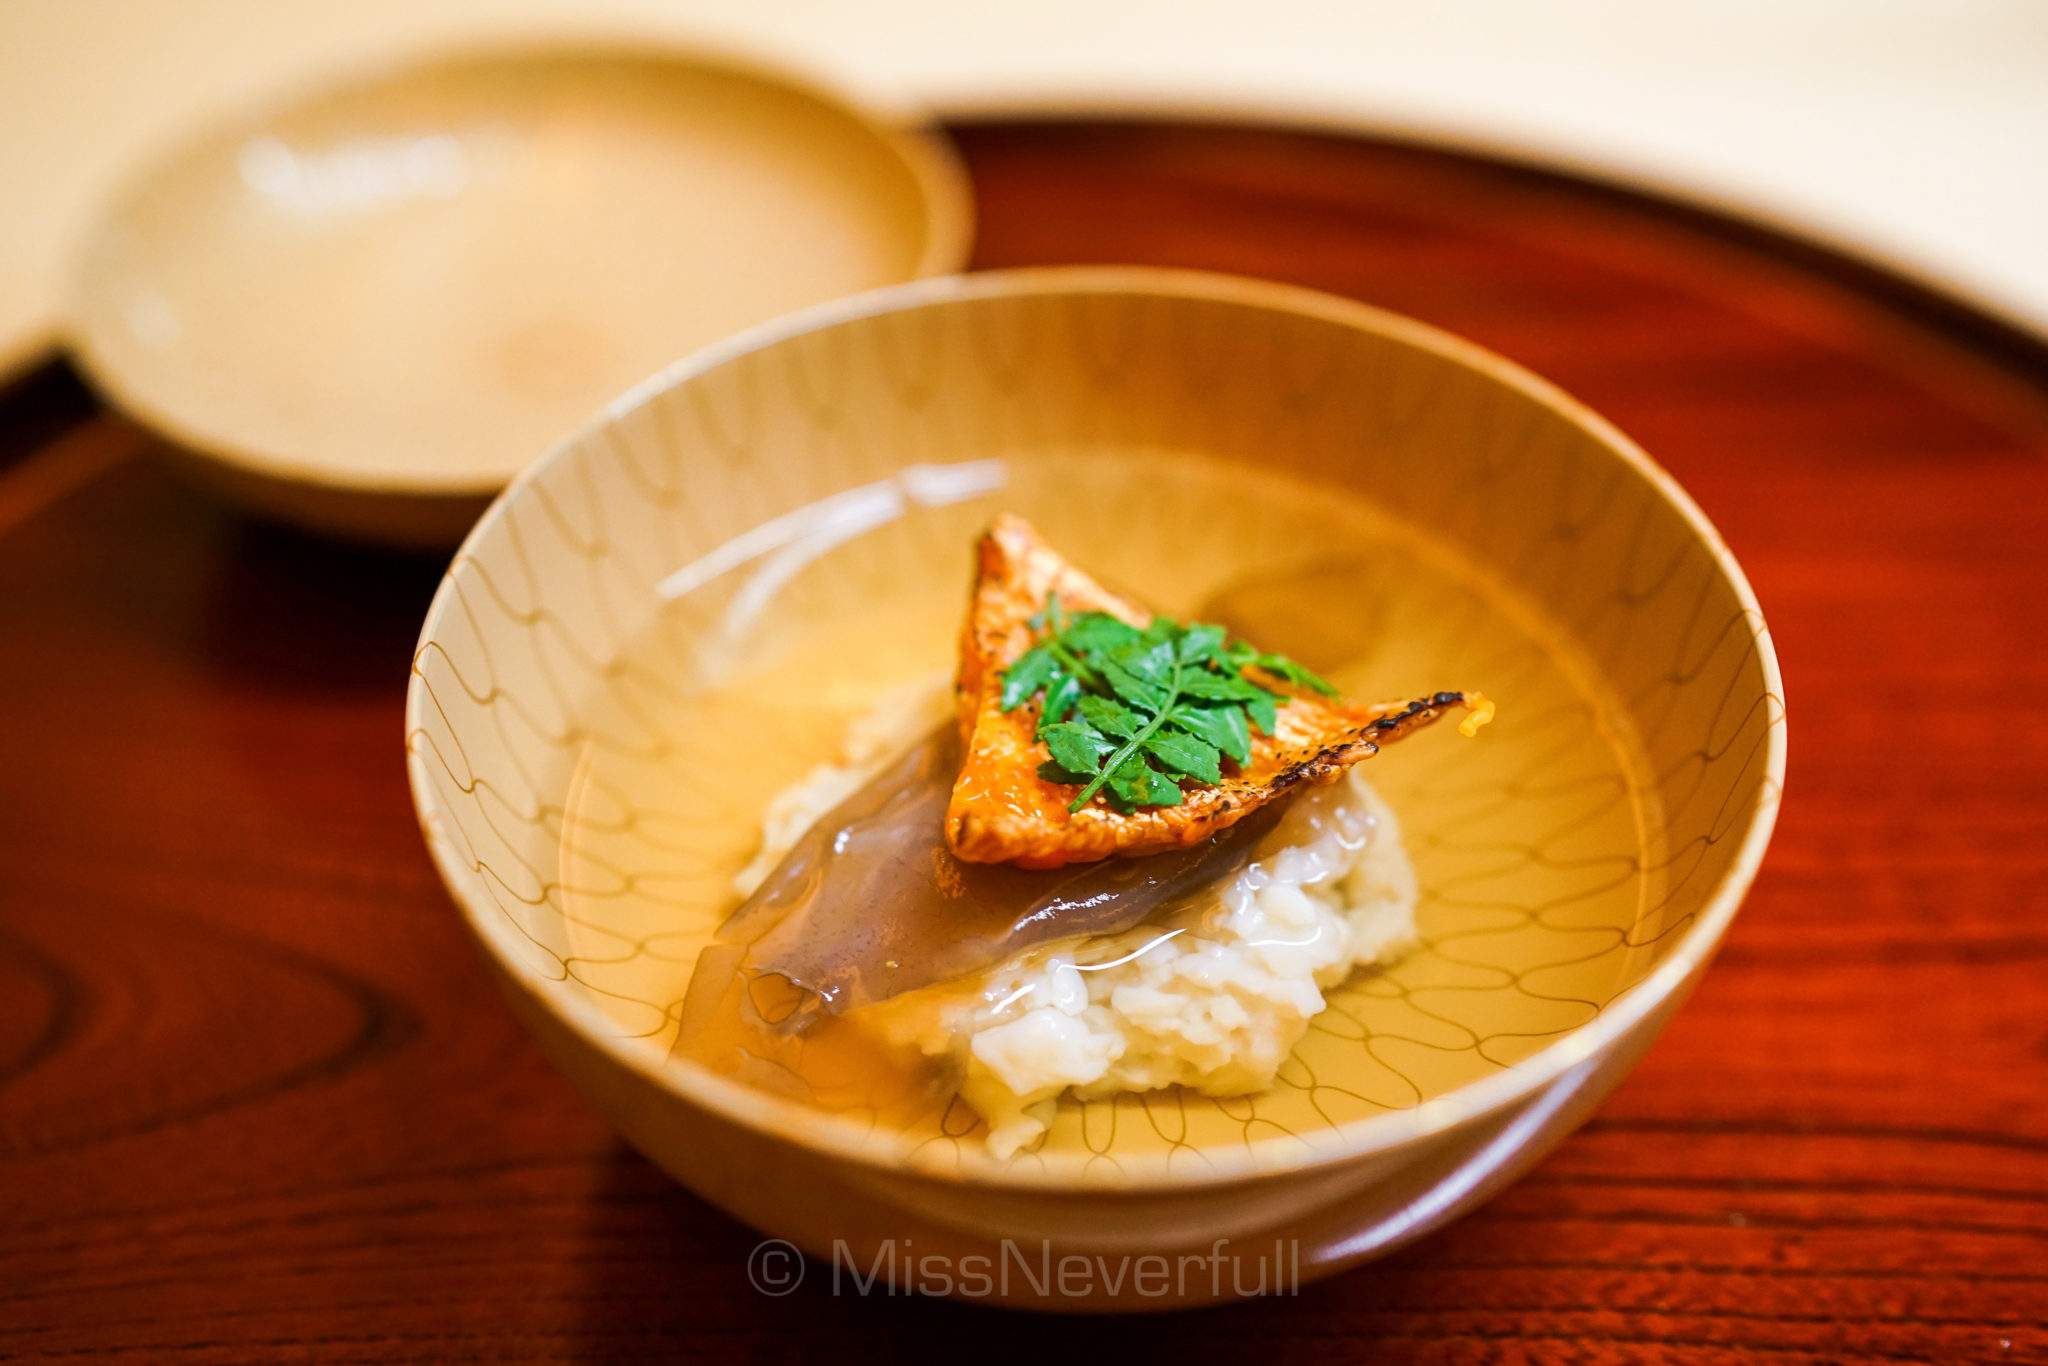 4. ホタテ真薯とクチコのお椀 | Hotate scallop dumpling soup, sea cucumber ovaries